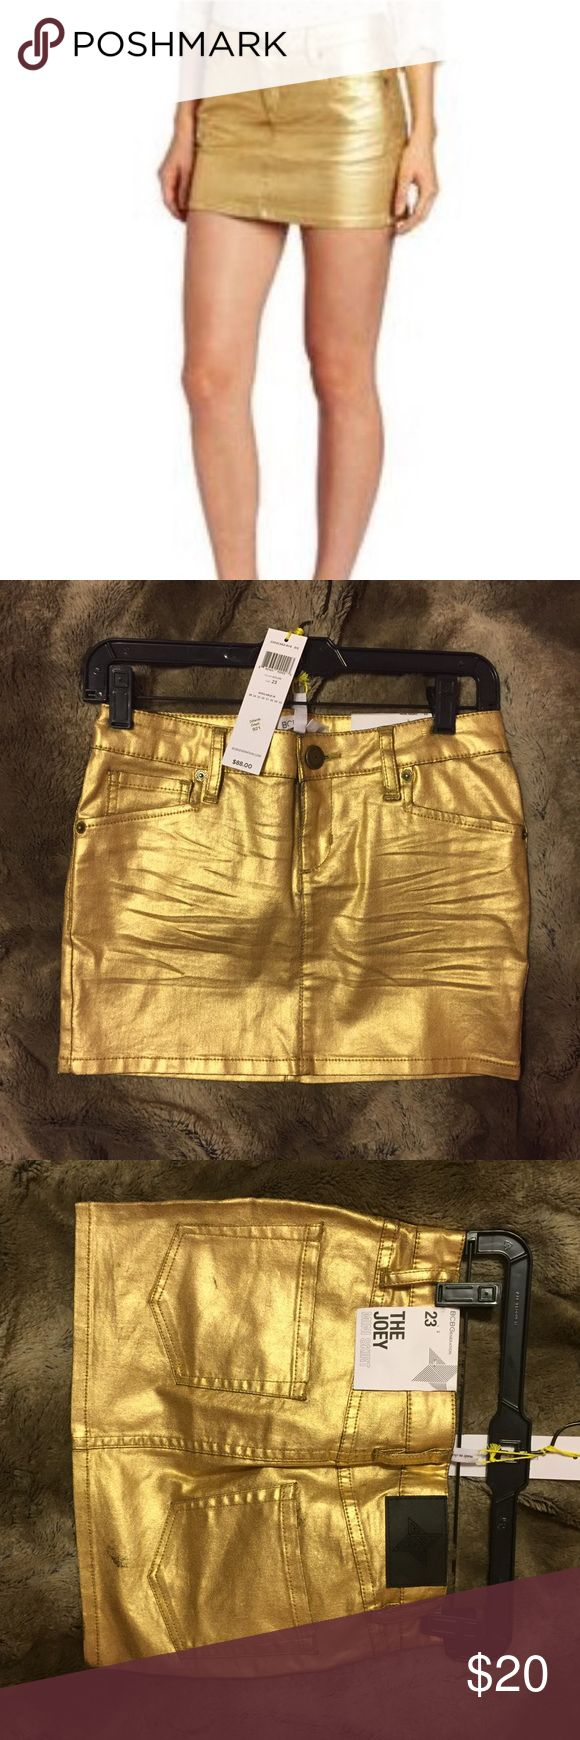 BCBGENERATION gold skirt New with tags. Great condition. Last 2 pictures show the distress in the skirt. Not worn. Size: 23. Similar to XS BCBGeneration Skirts Mini